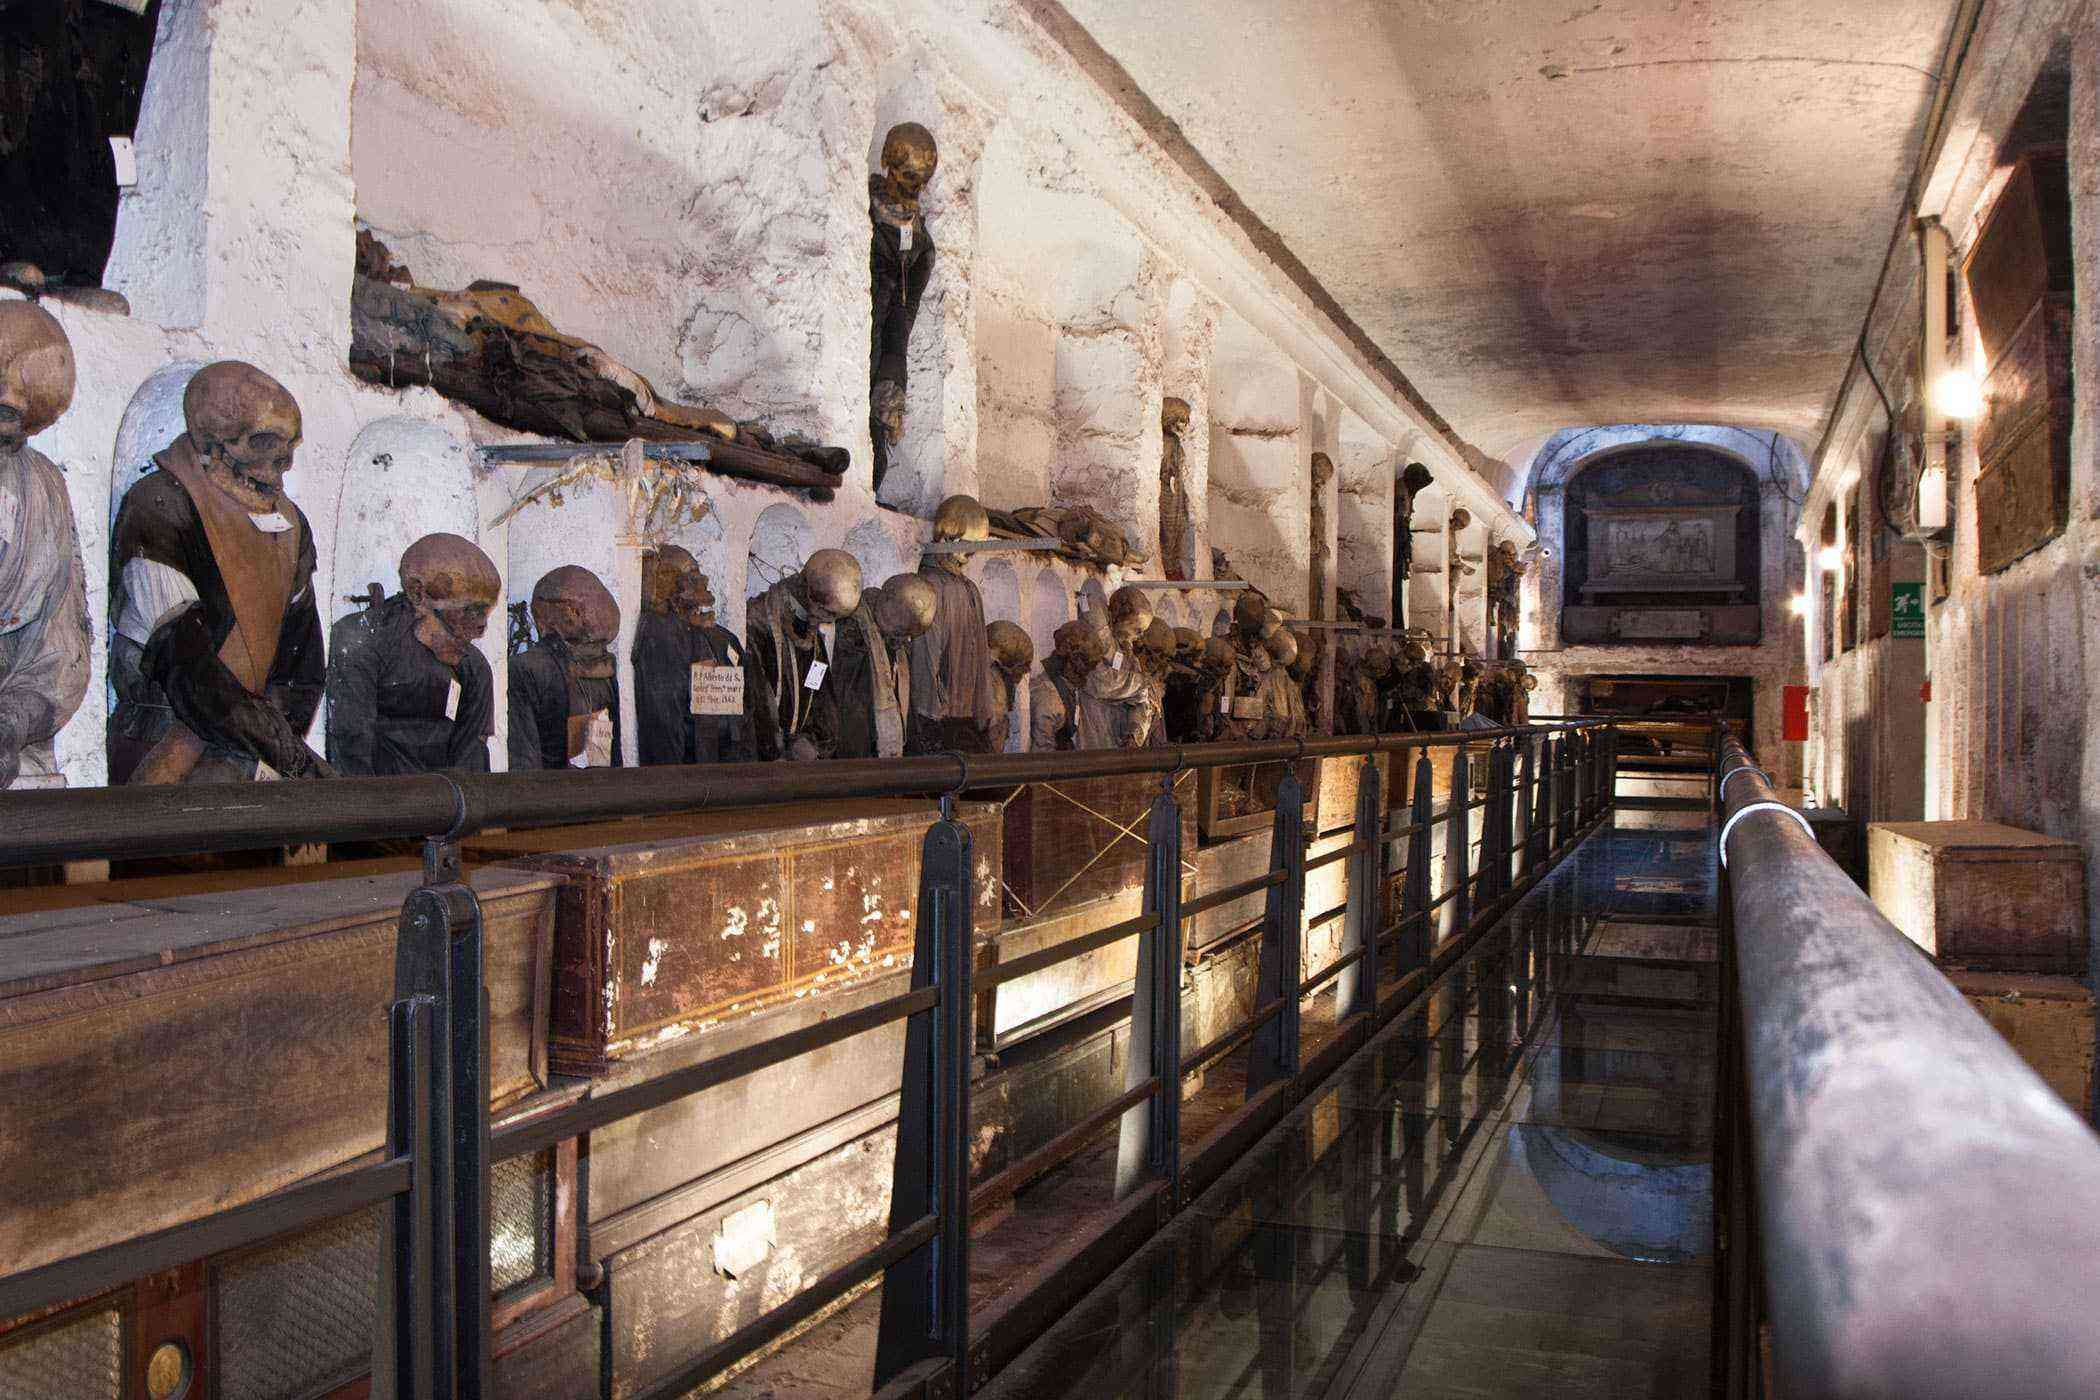 Stuff-Made-Out-Of-Bones-Capuchin-Catacombs-1